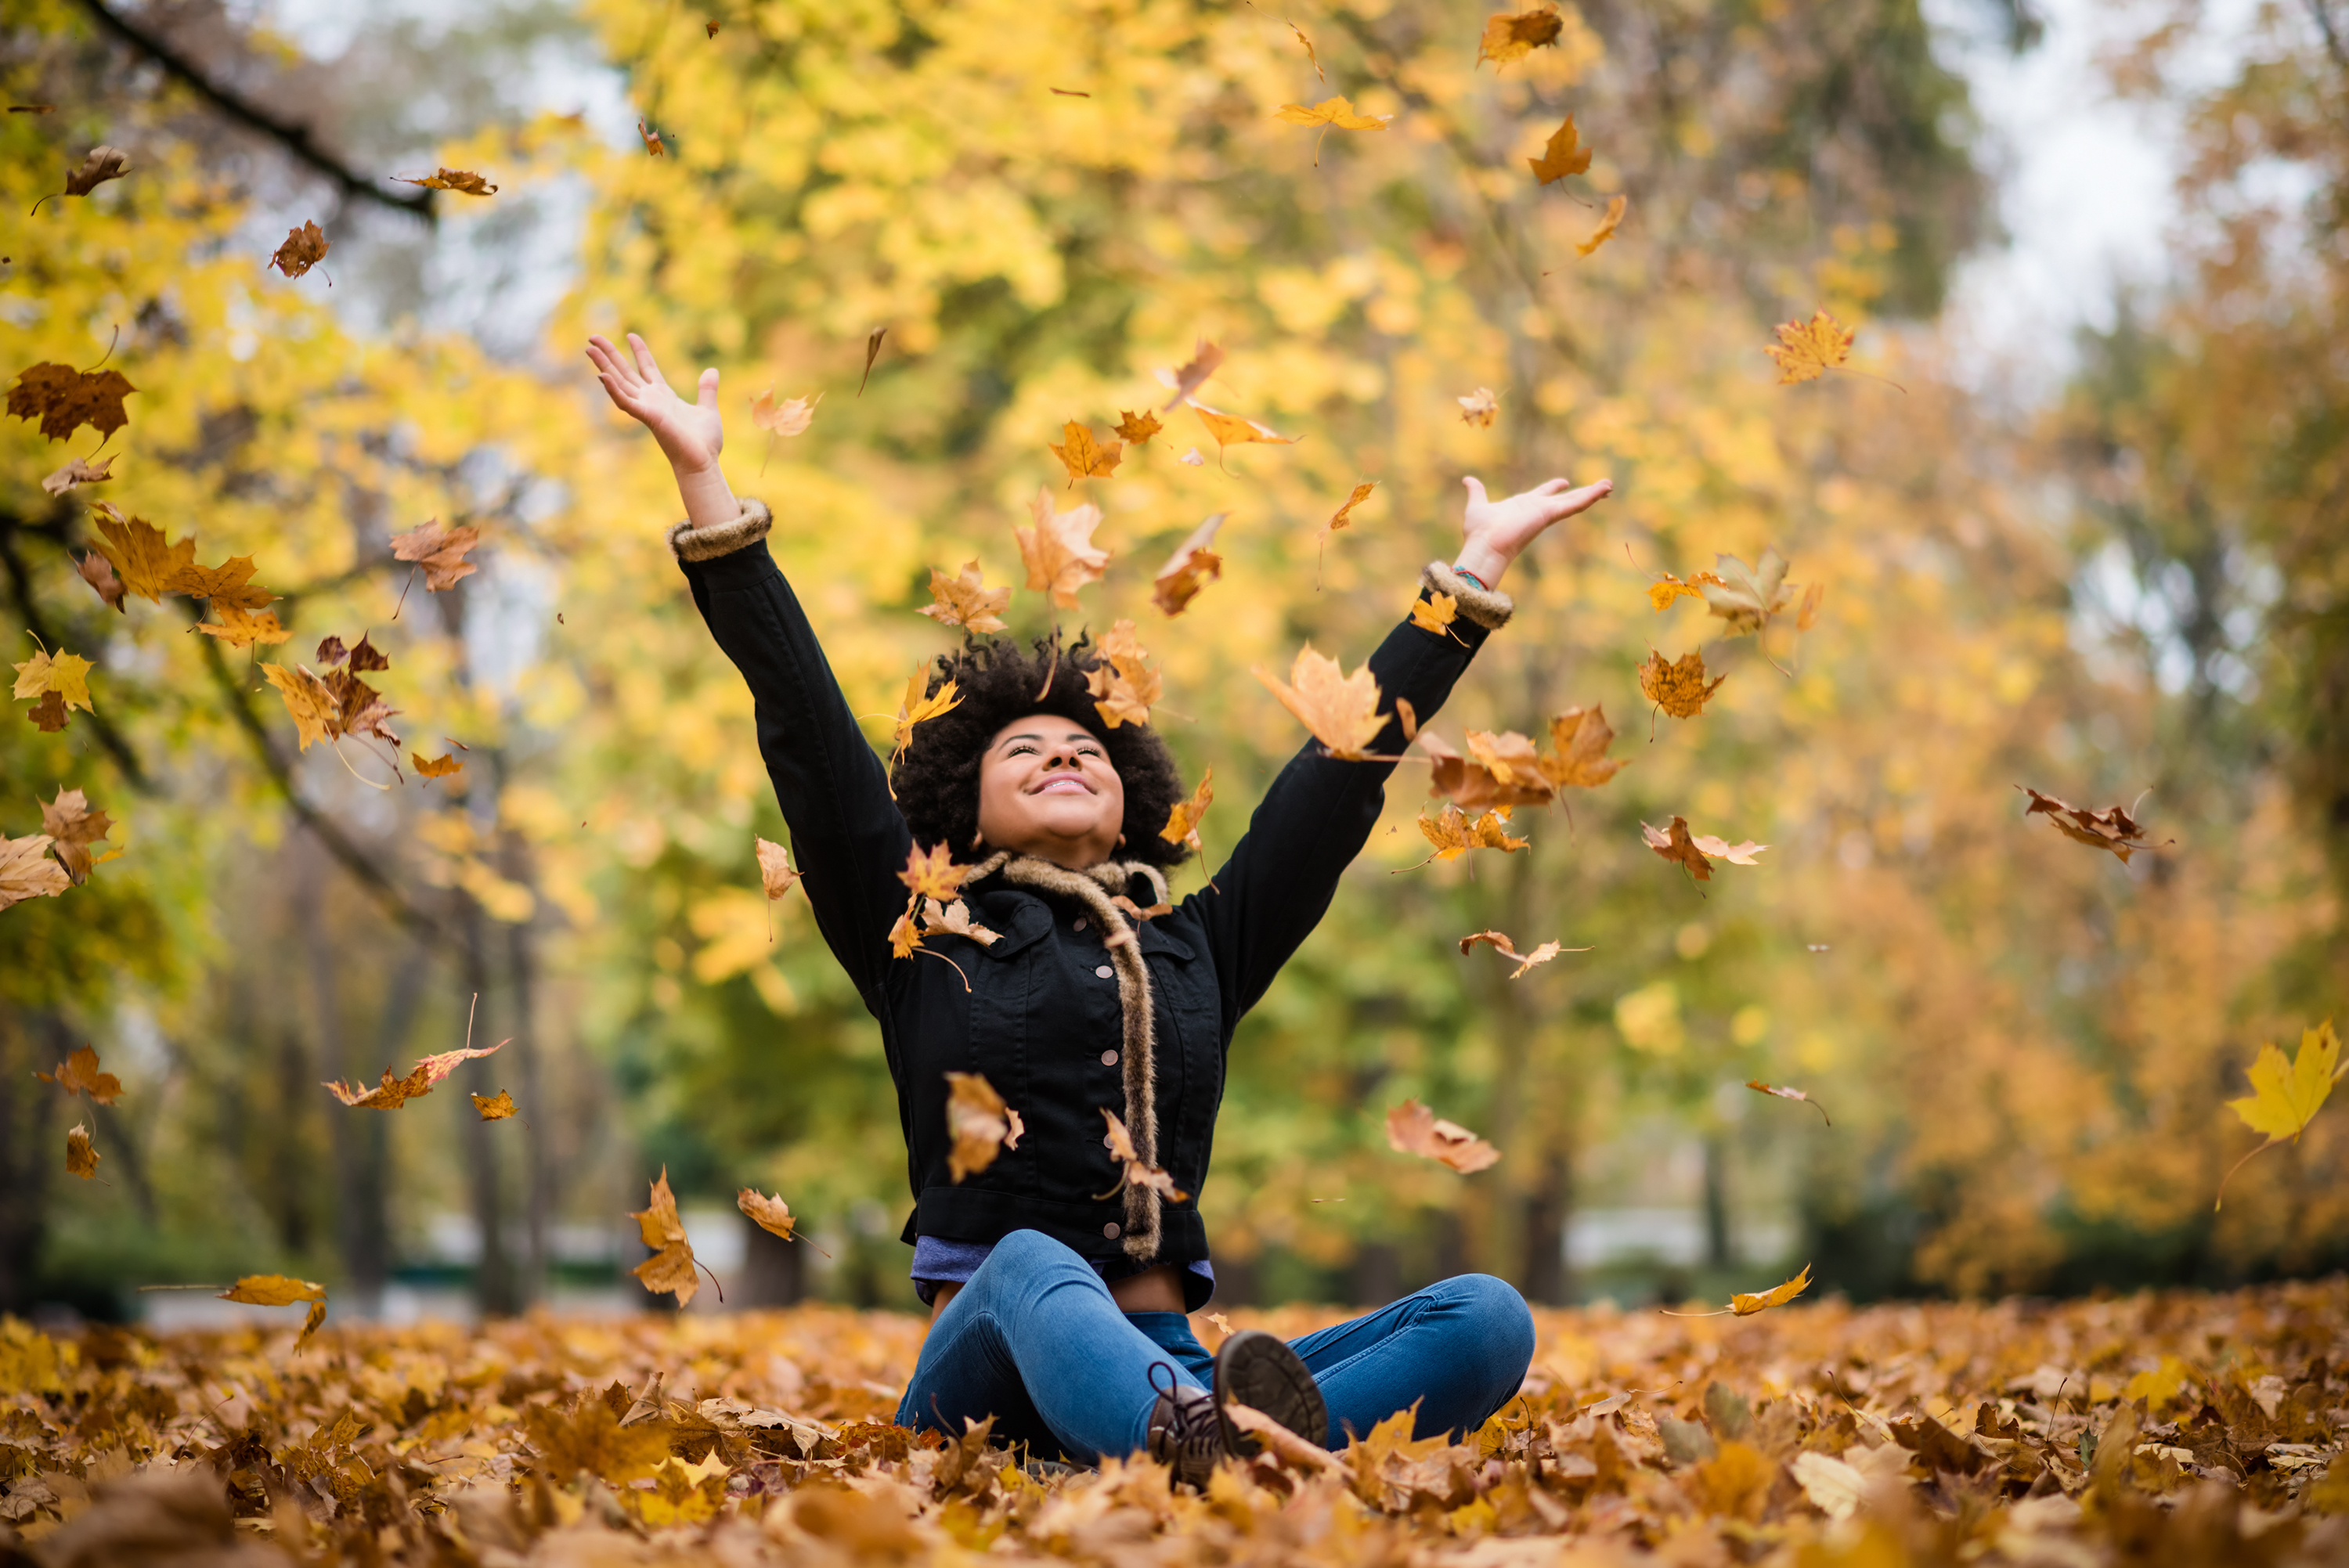 Student sitting in fall leaves and throwing leaves in the air